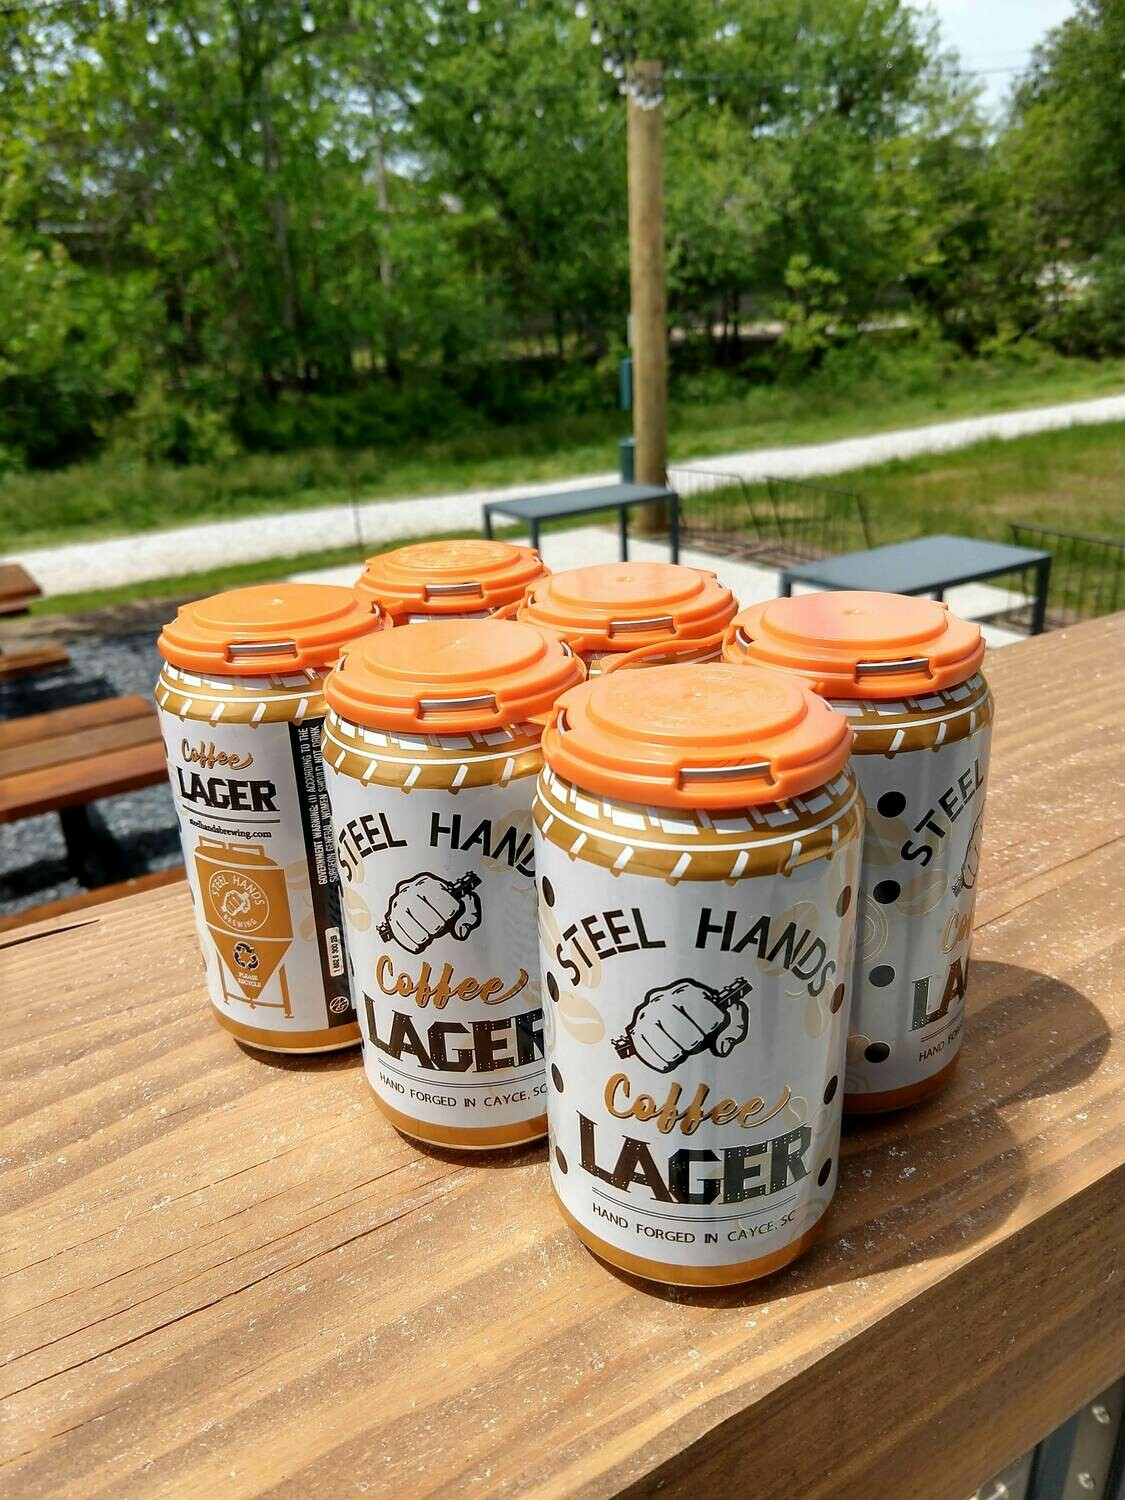 Steel Hands Coffee Lager 6-pack